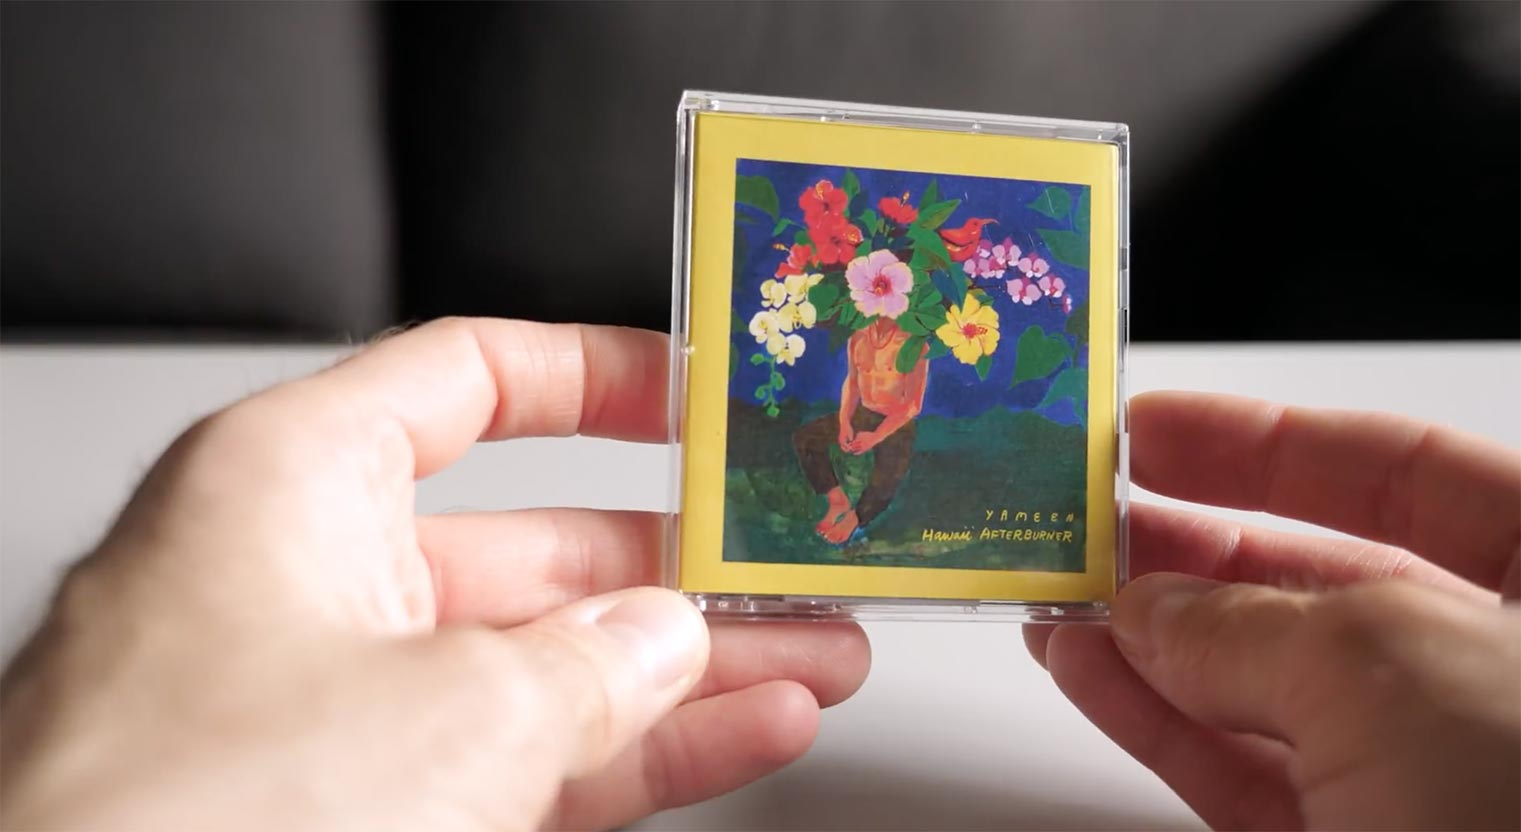 Yameen MiniDisc featured on This Does Not Compute